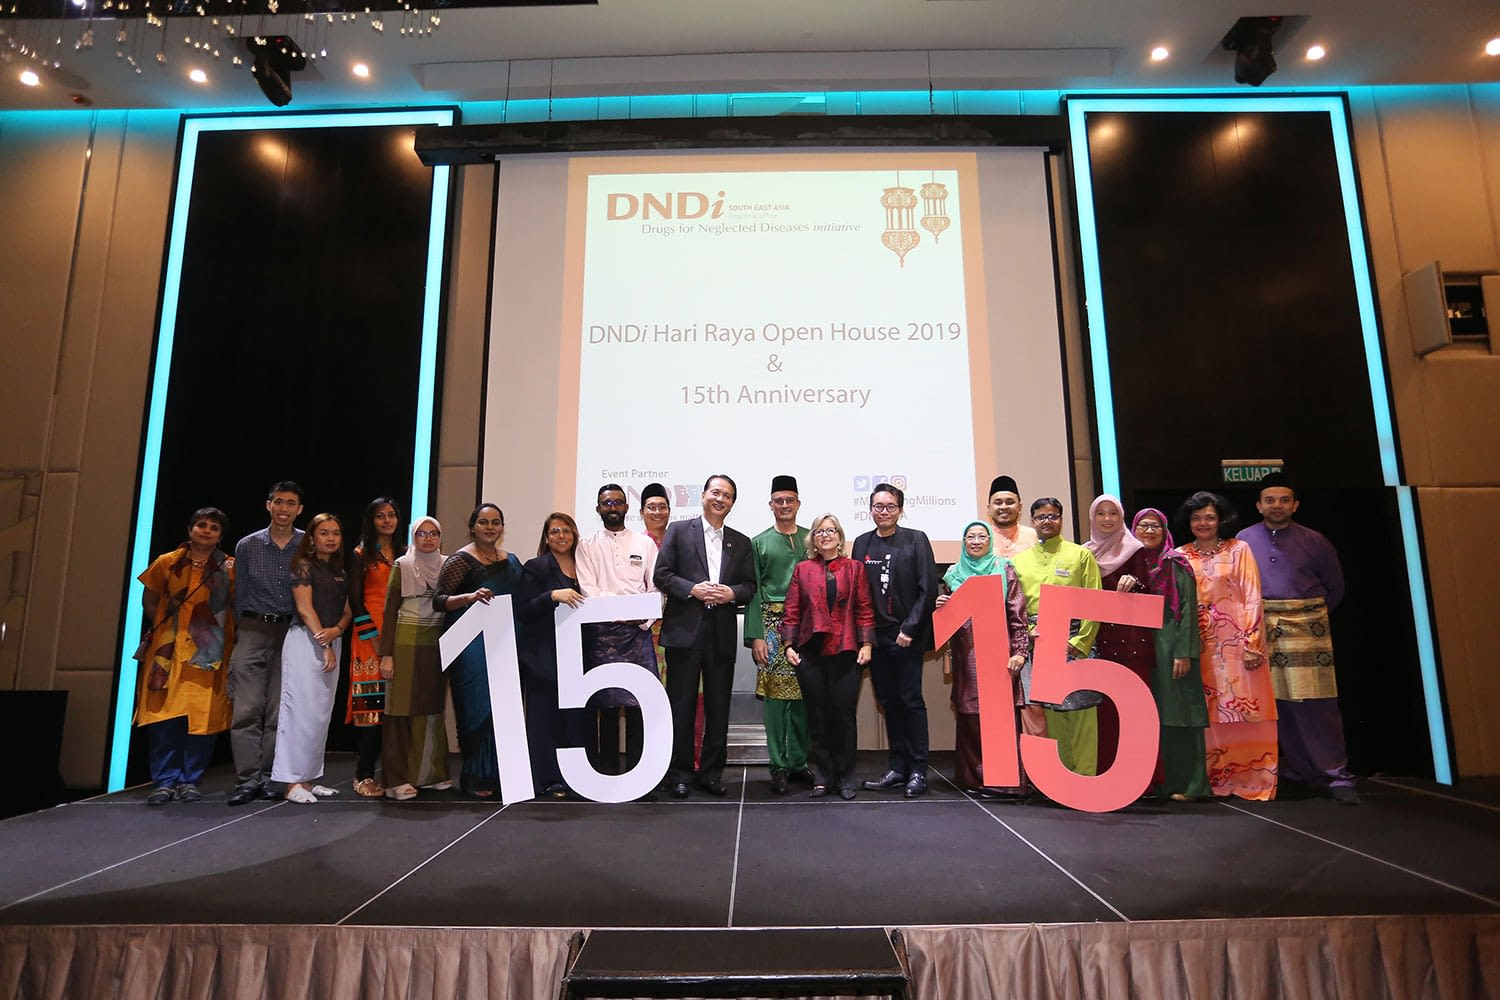 Stakeholders, partners, and staff at DNDi 15th Anniversary and Open House in South-East Asia